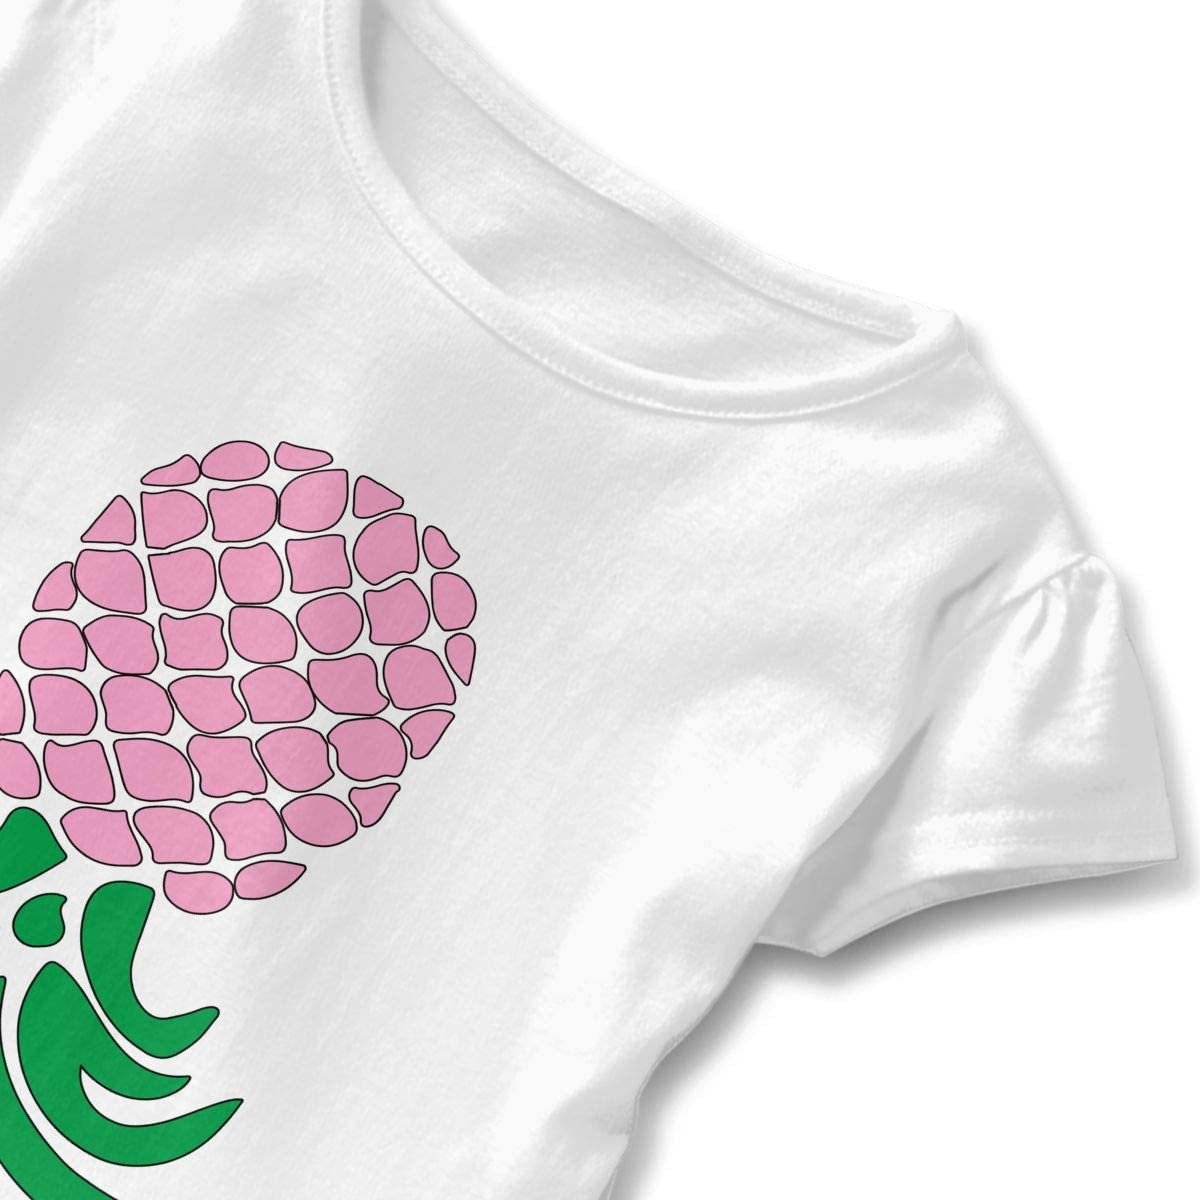 HYBDX9T Little Girls Upside Down Funny Short Sleeve Cotton T Shirts Basic Tops Tee Clothes